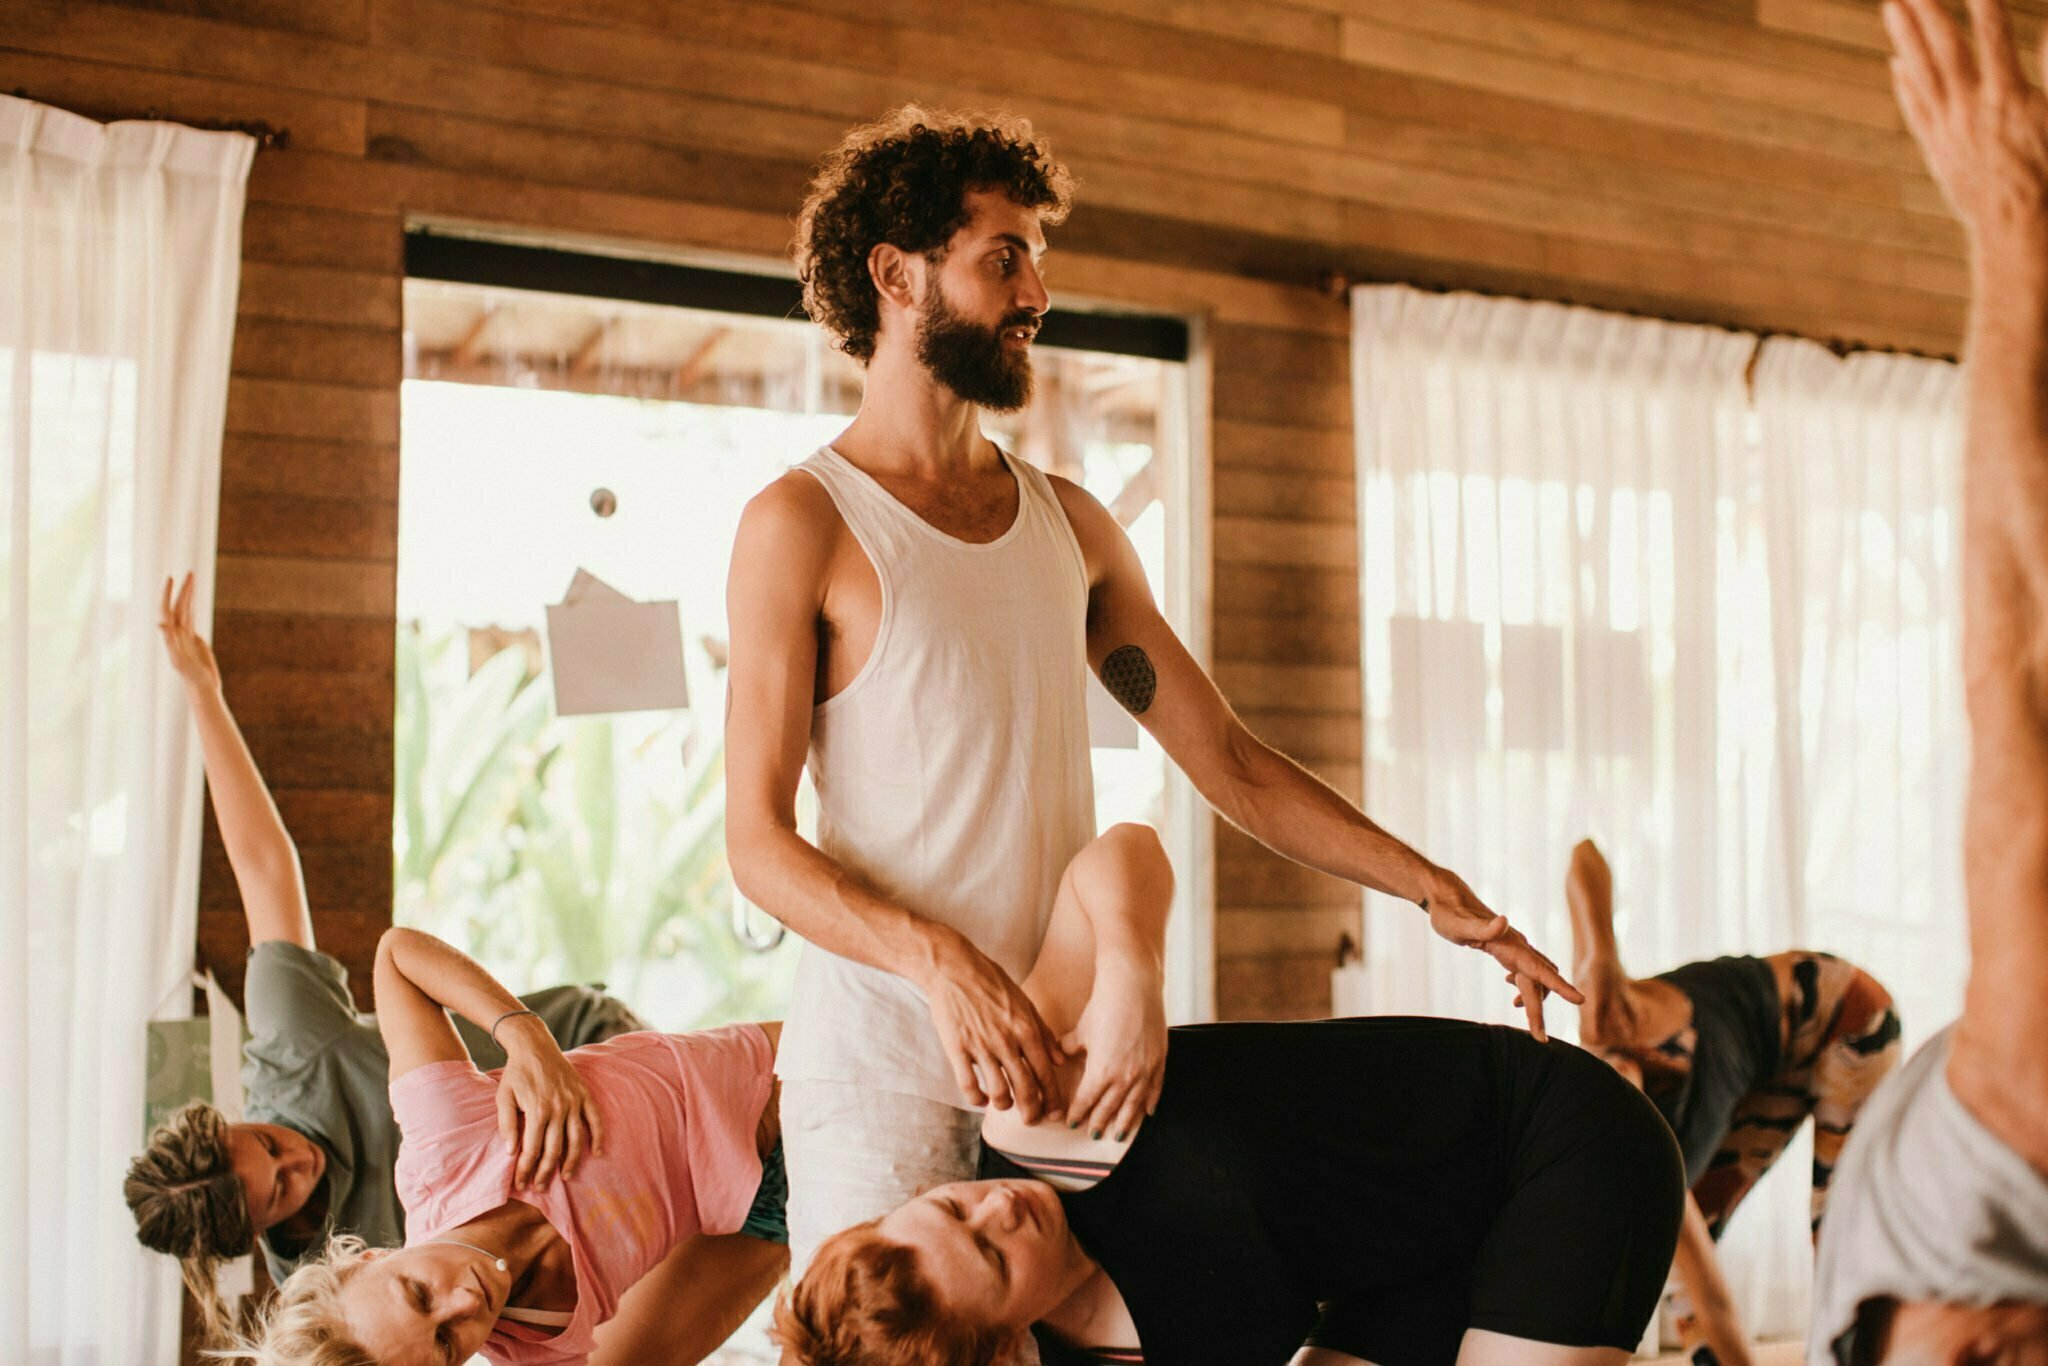 200hr yoga teacher training – Stefan Camilleri Yoga